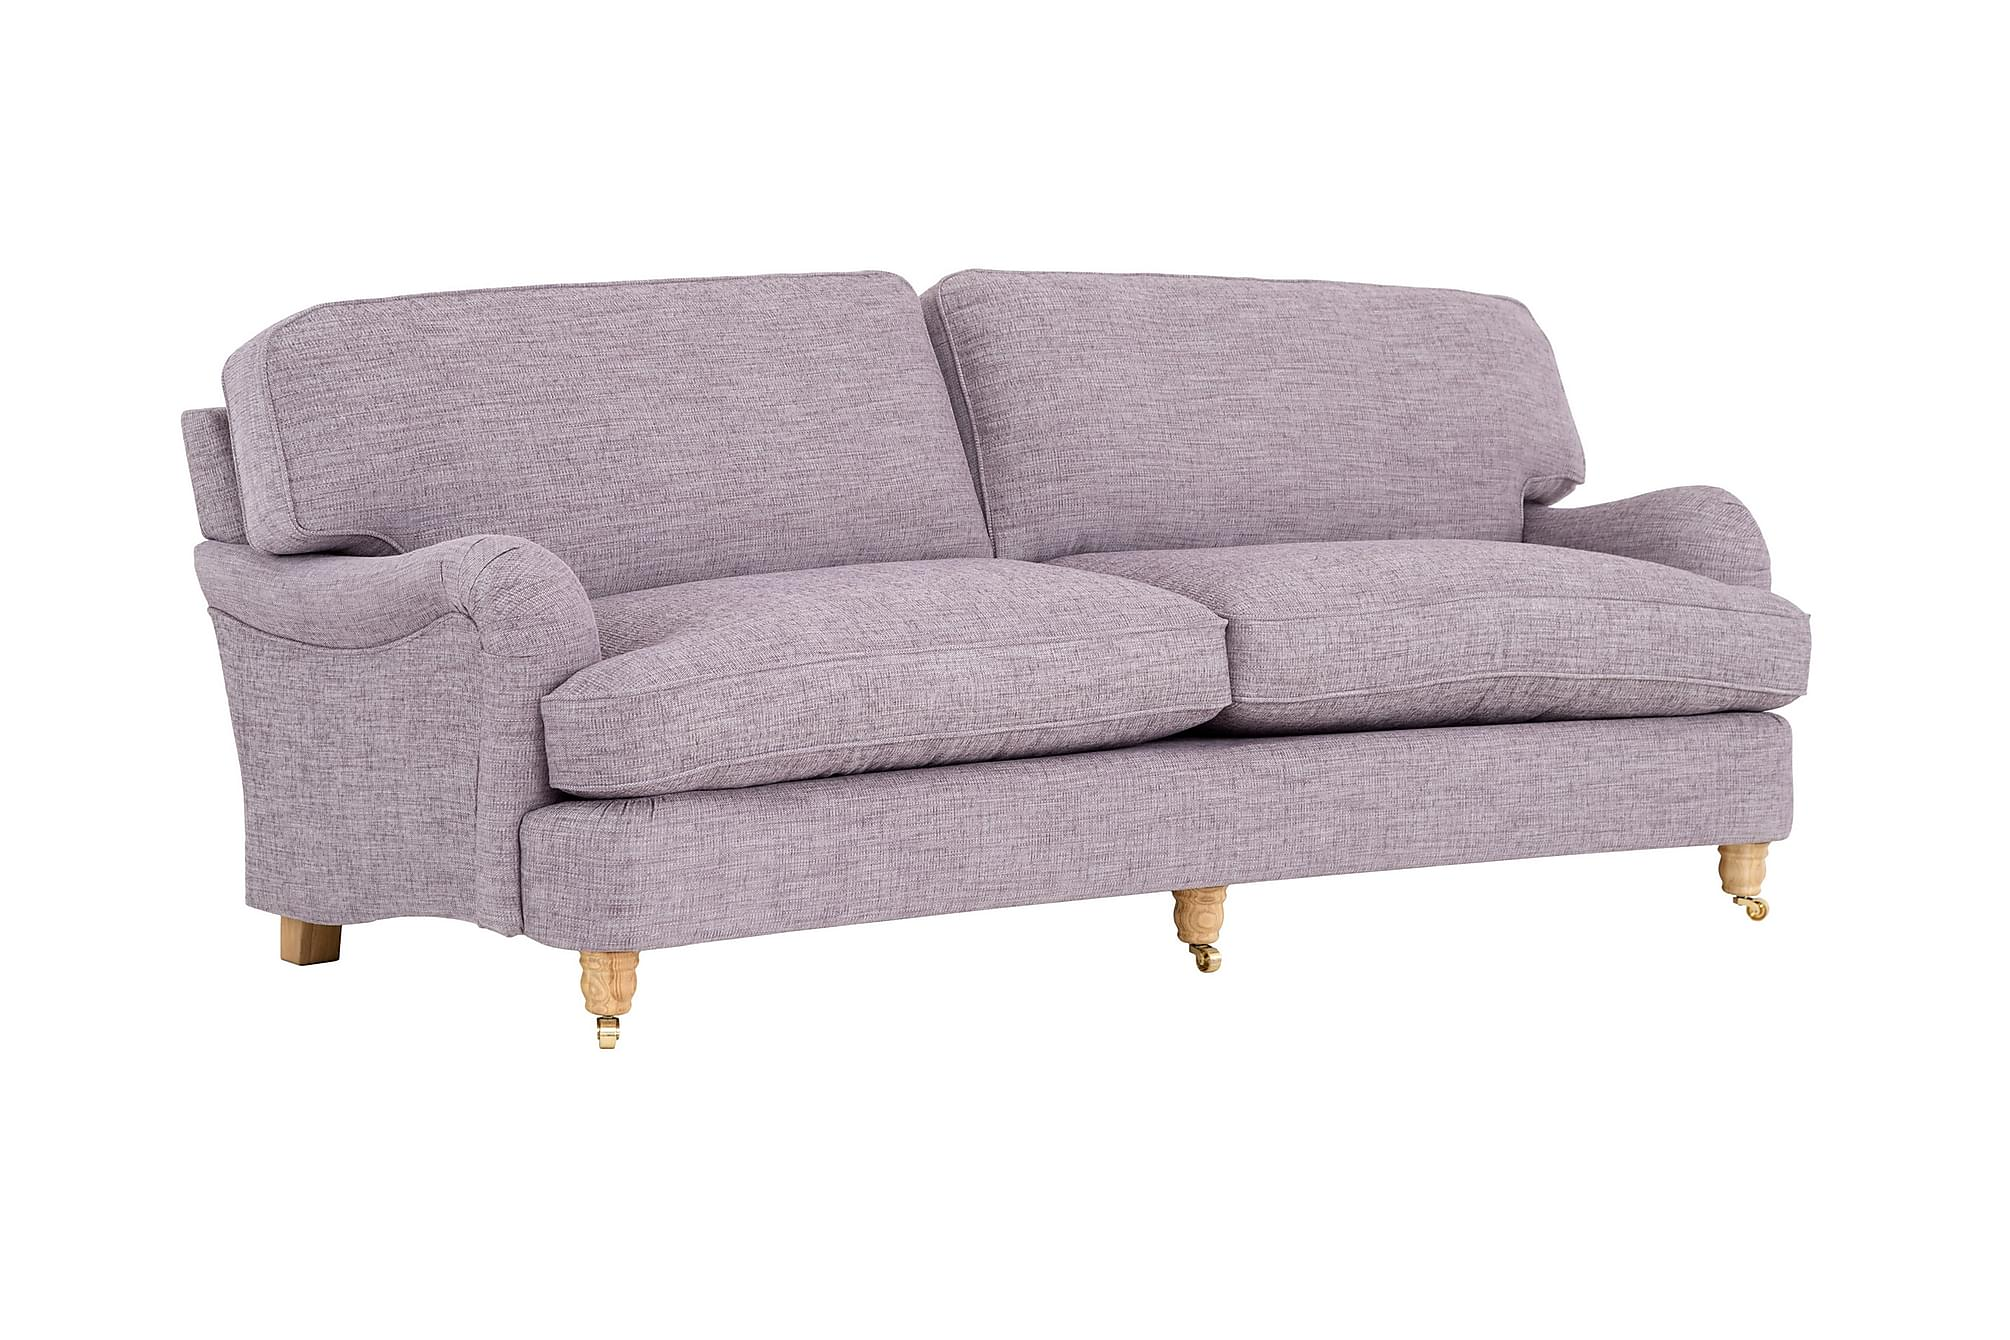 Howard deluxe 3 seter buet sofa lilla 3 seter sofa sofaer for Q furniture west kirby